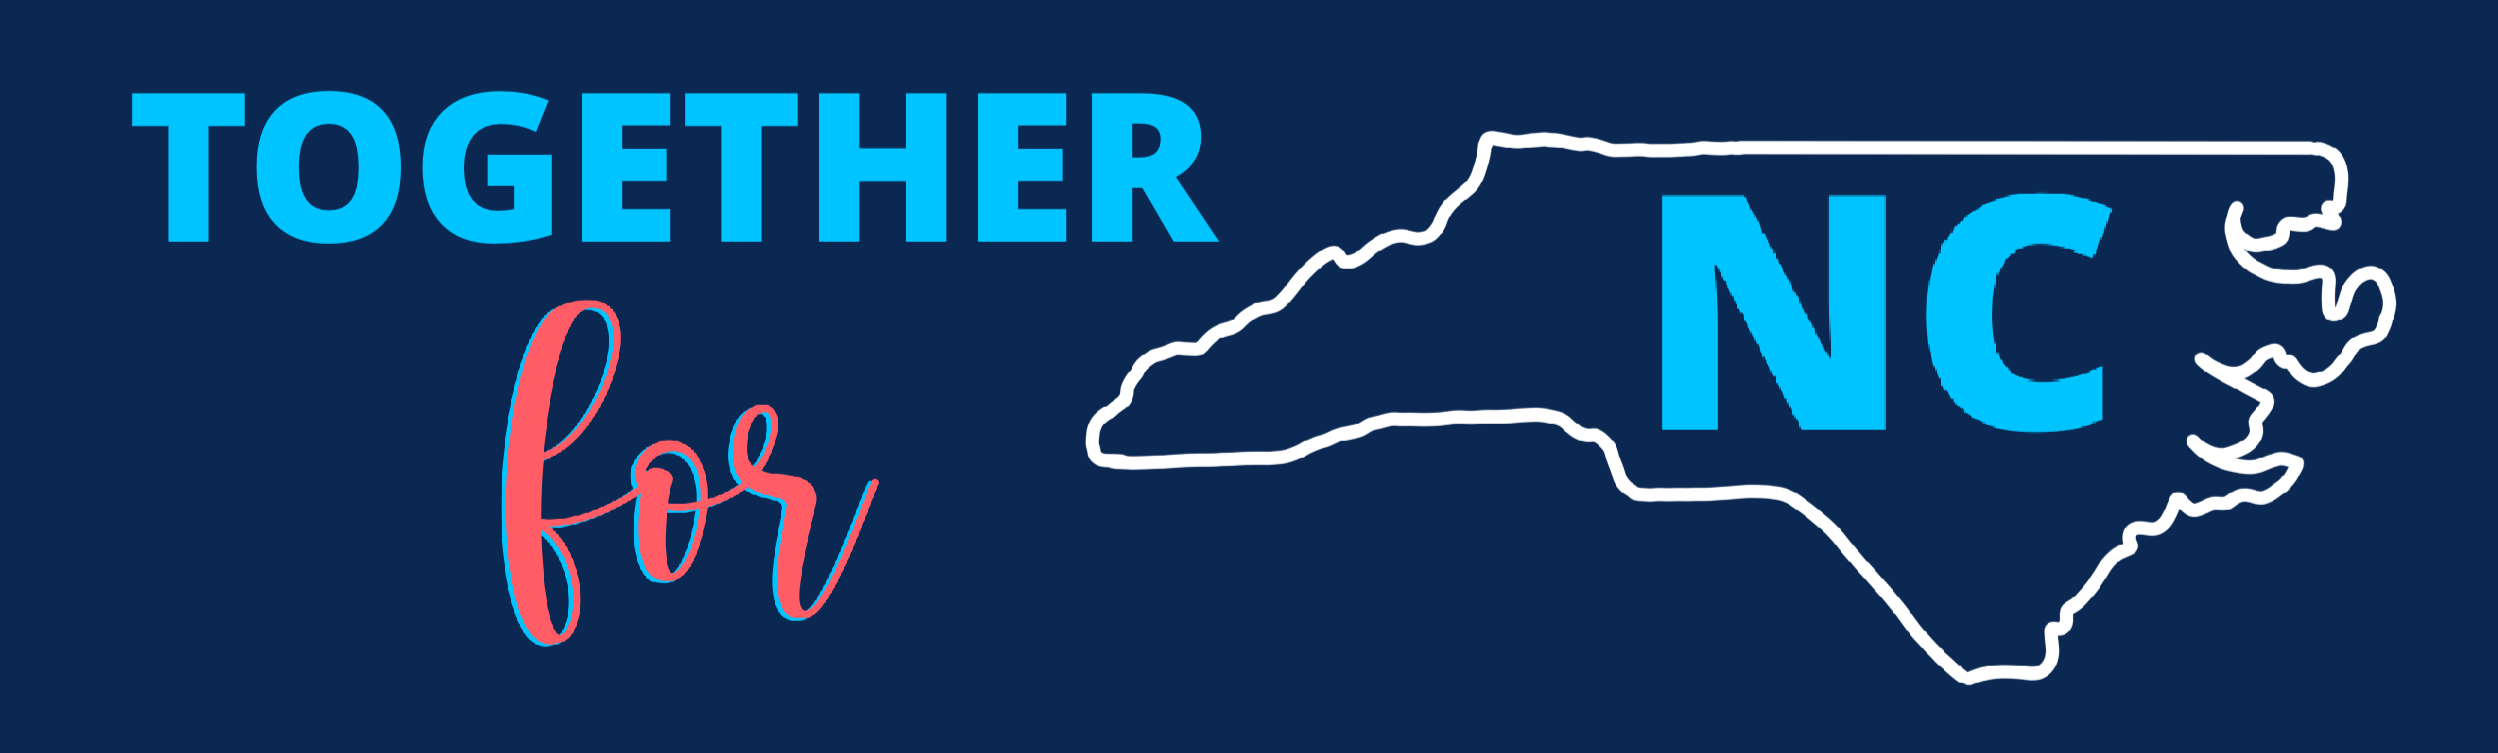 Together_for_NC_logo.png